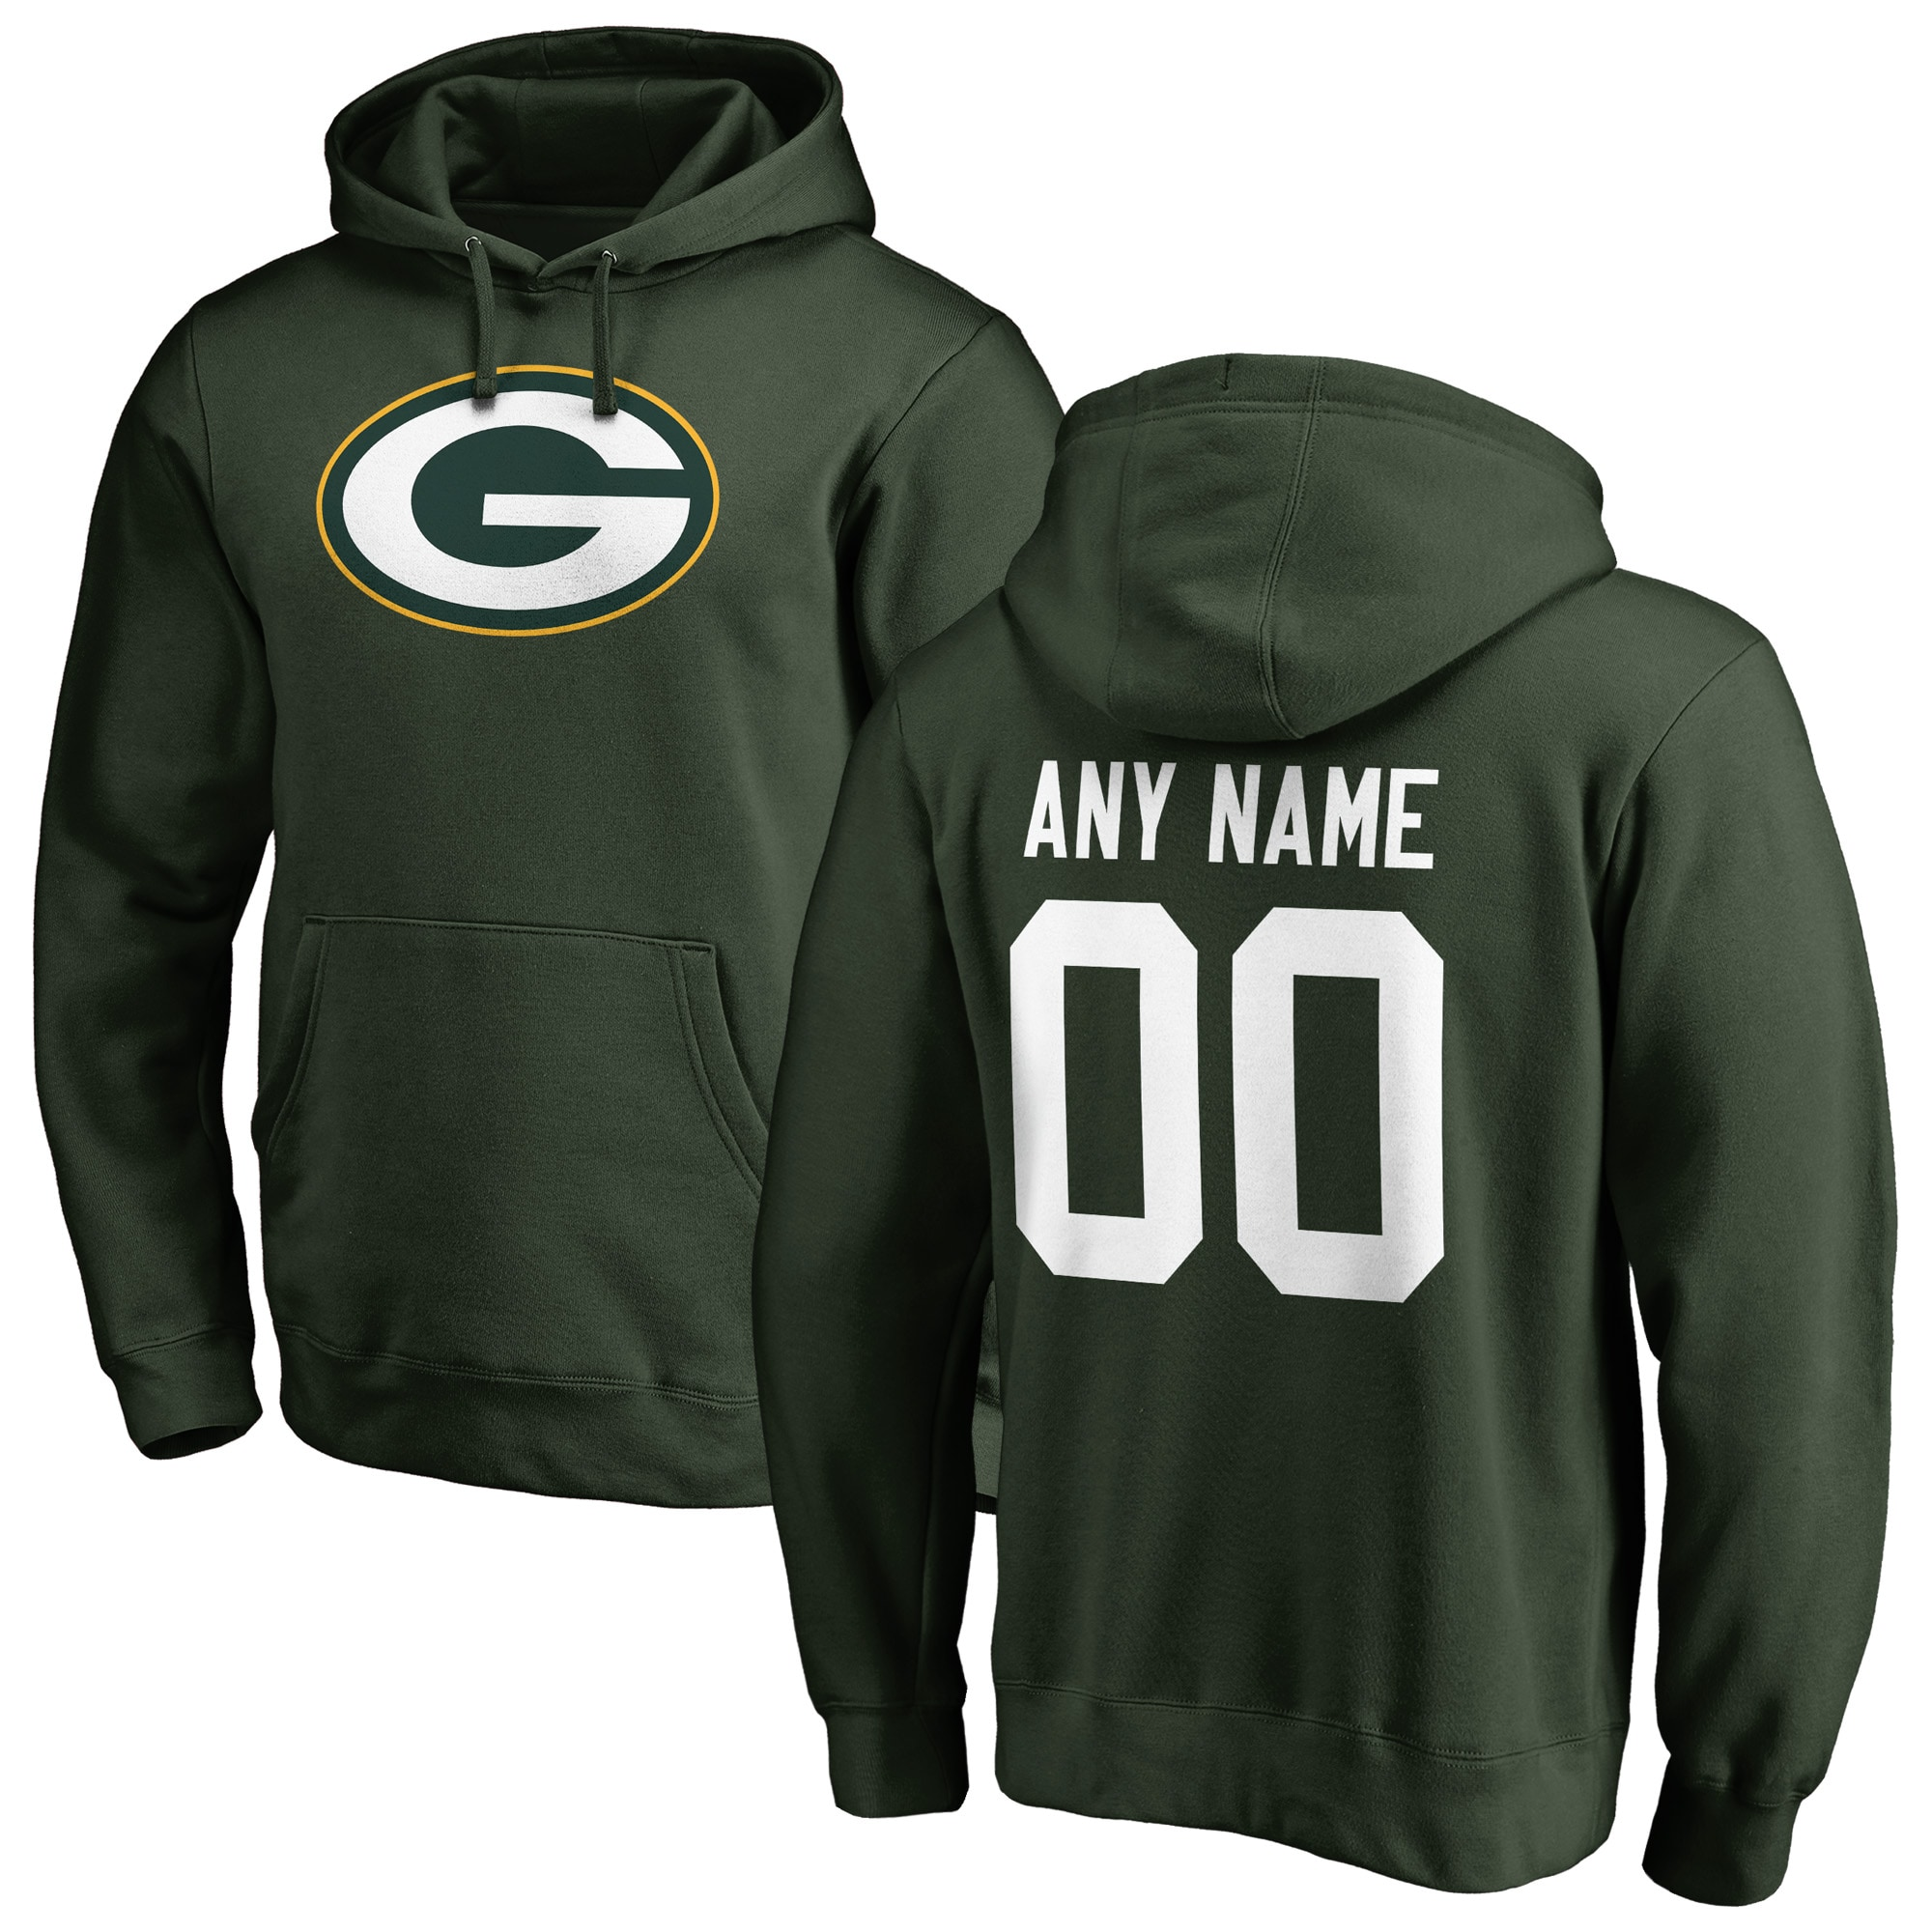 Green Bay Packers NFL Pro Line Any Name & Number Logo Personalized Pullover Hoodie - Green